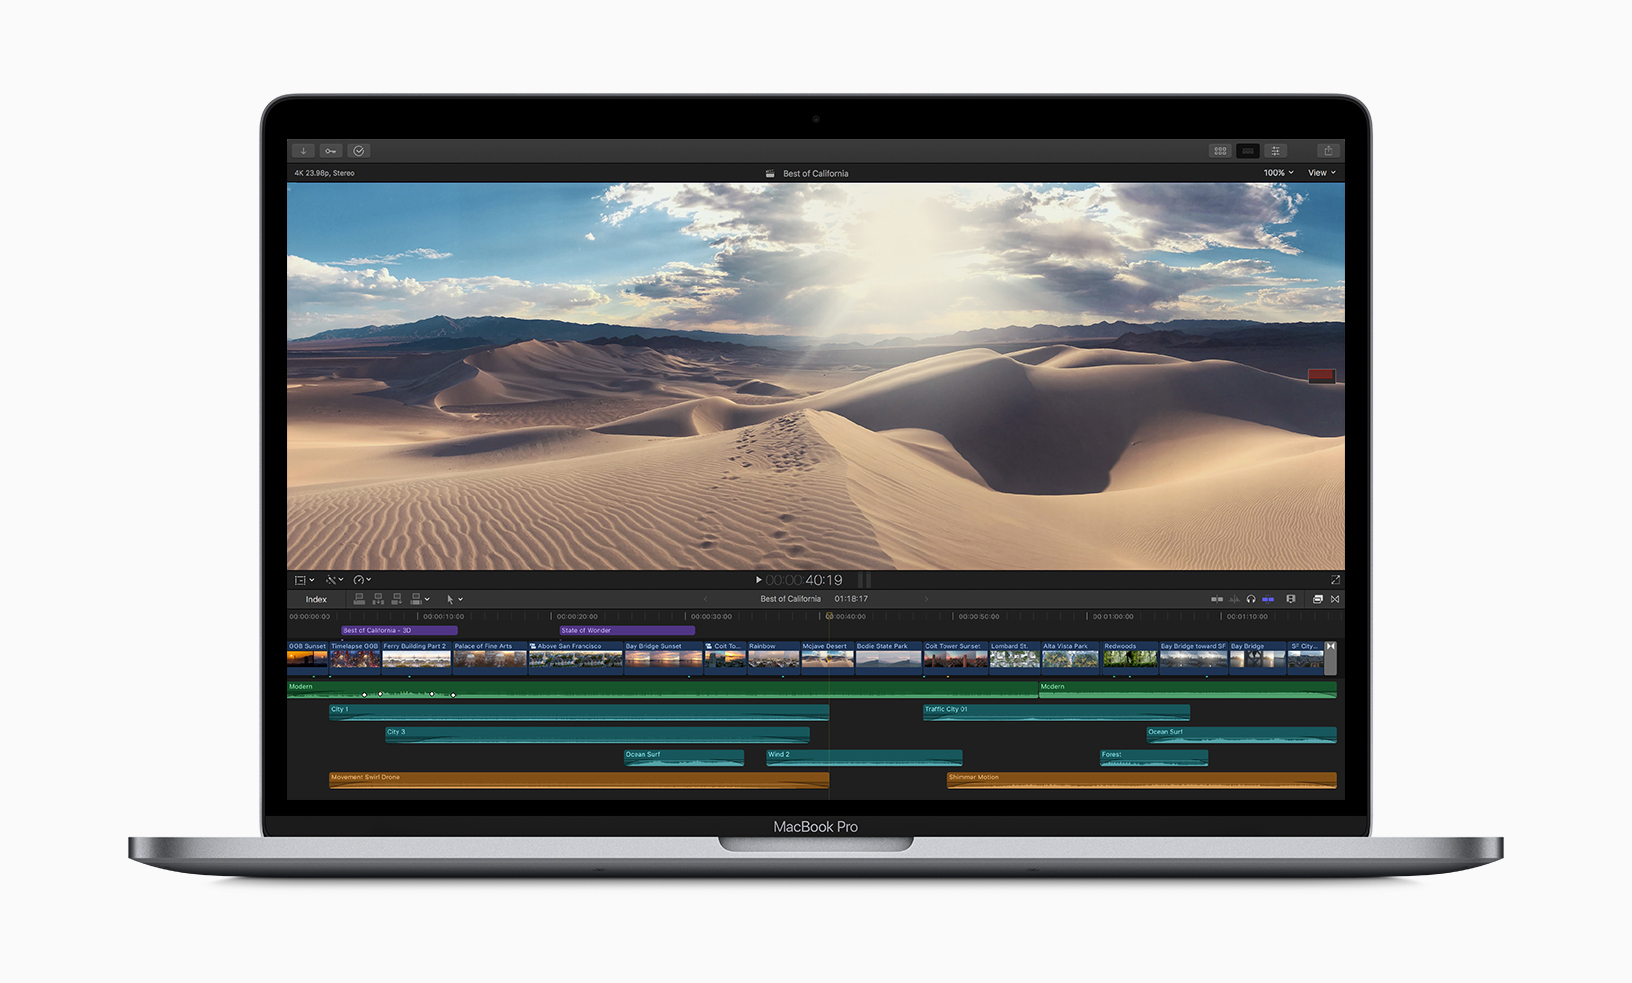 apple macbookpro 8 core video editing 05212019 - Apple Debuts New 8-Core MacBook Pro With Updated Keyboard